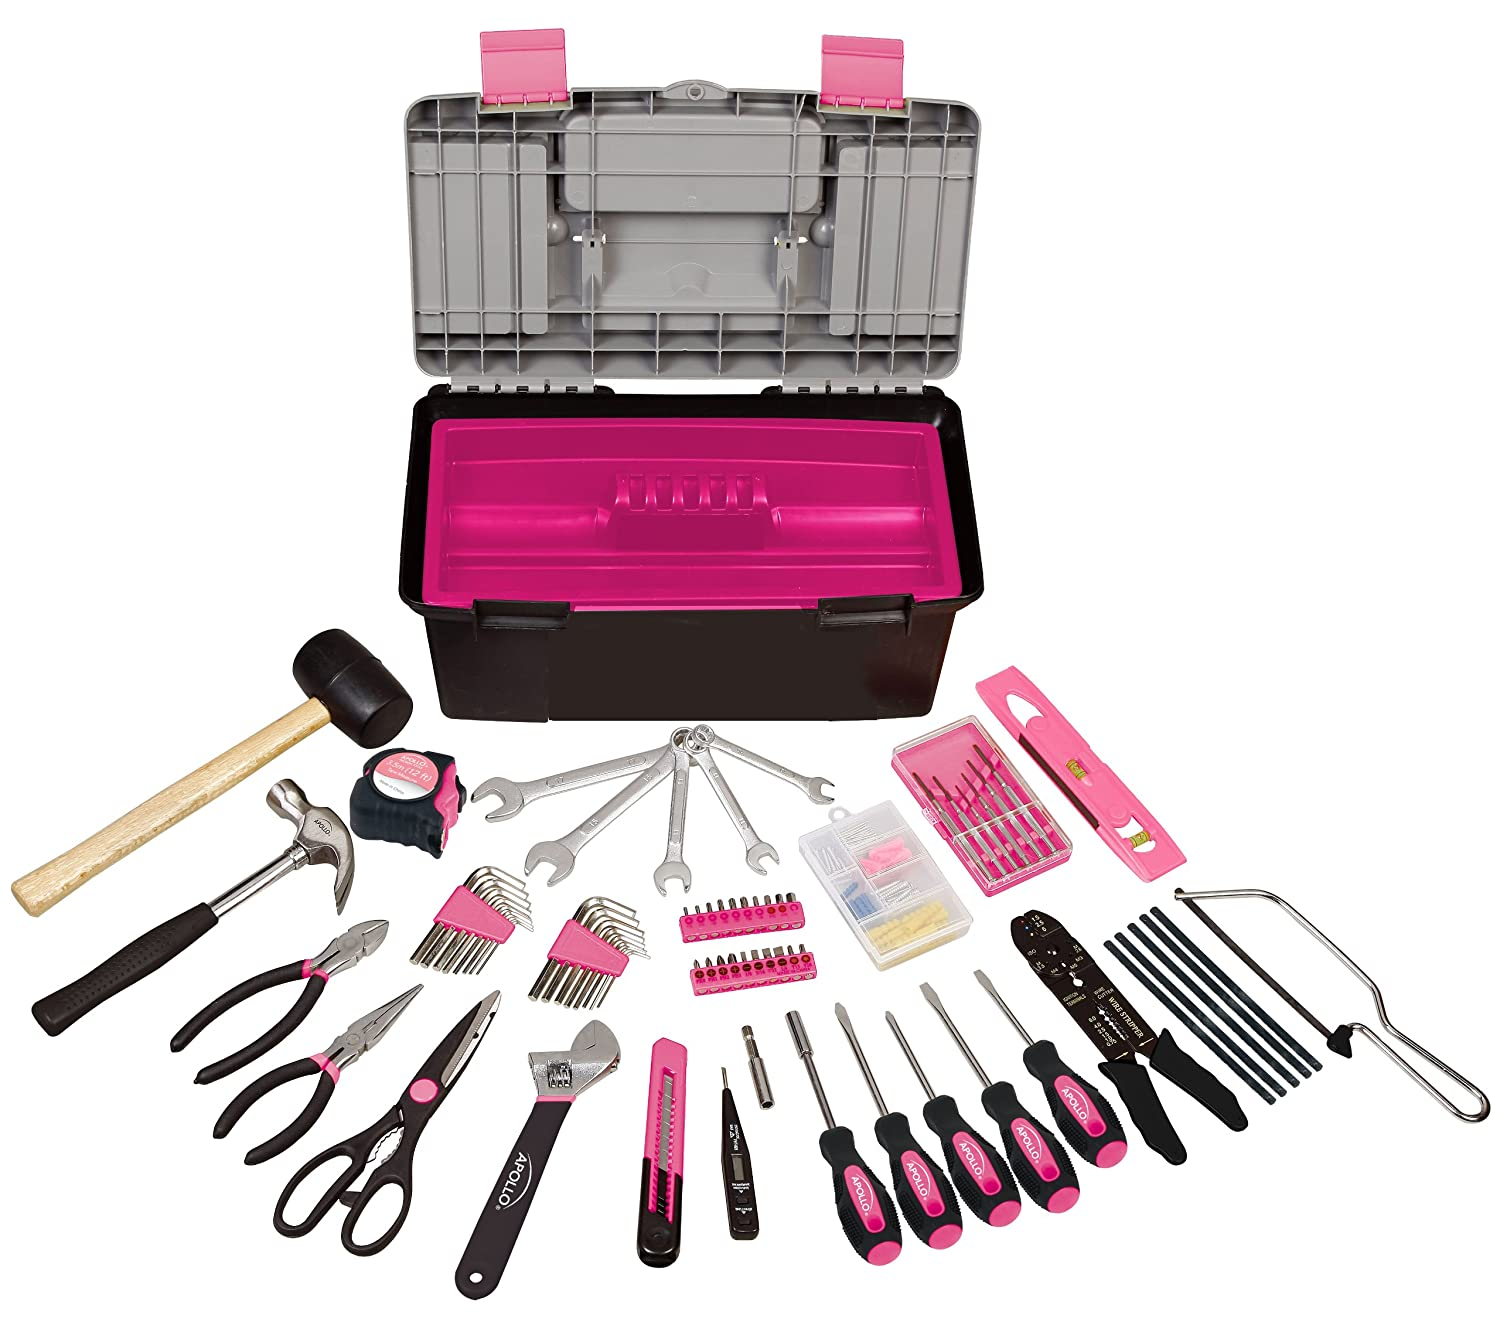 Apollo Precision Tools DT7102P Household Tool Kit with Tool Box, Pink, 170-Piece at Sears.com